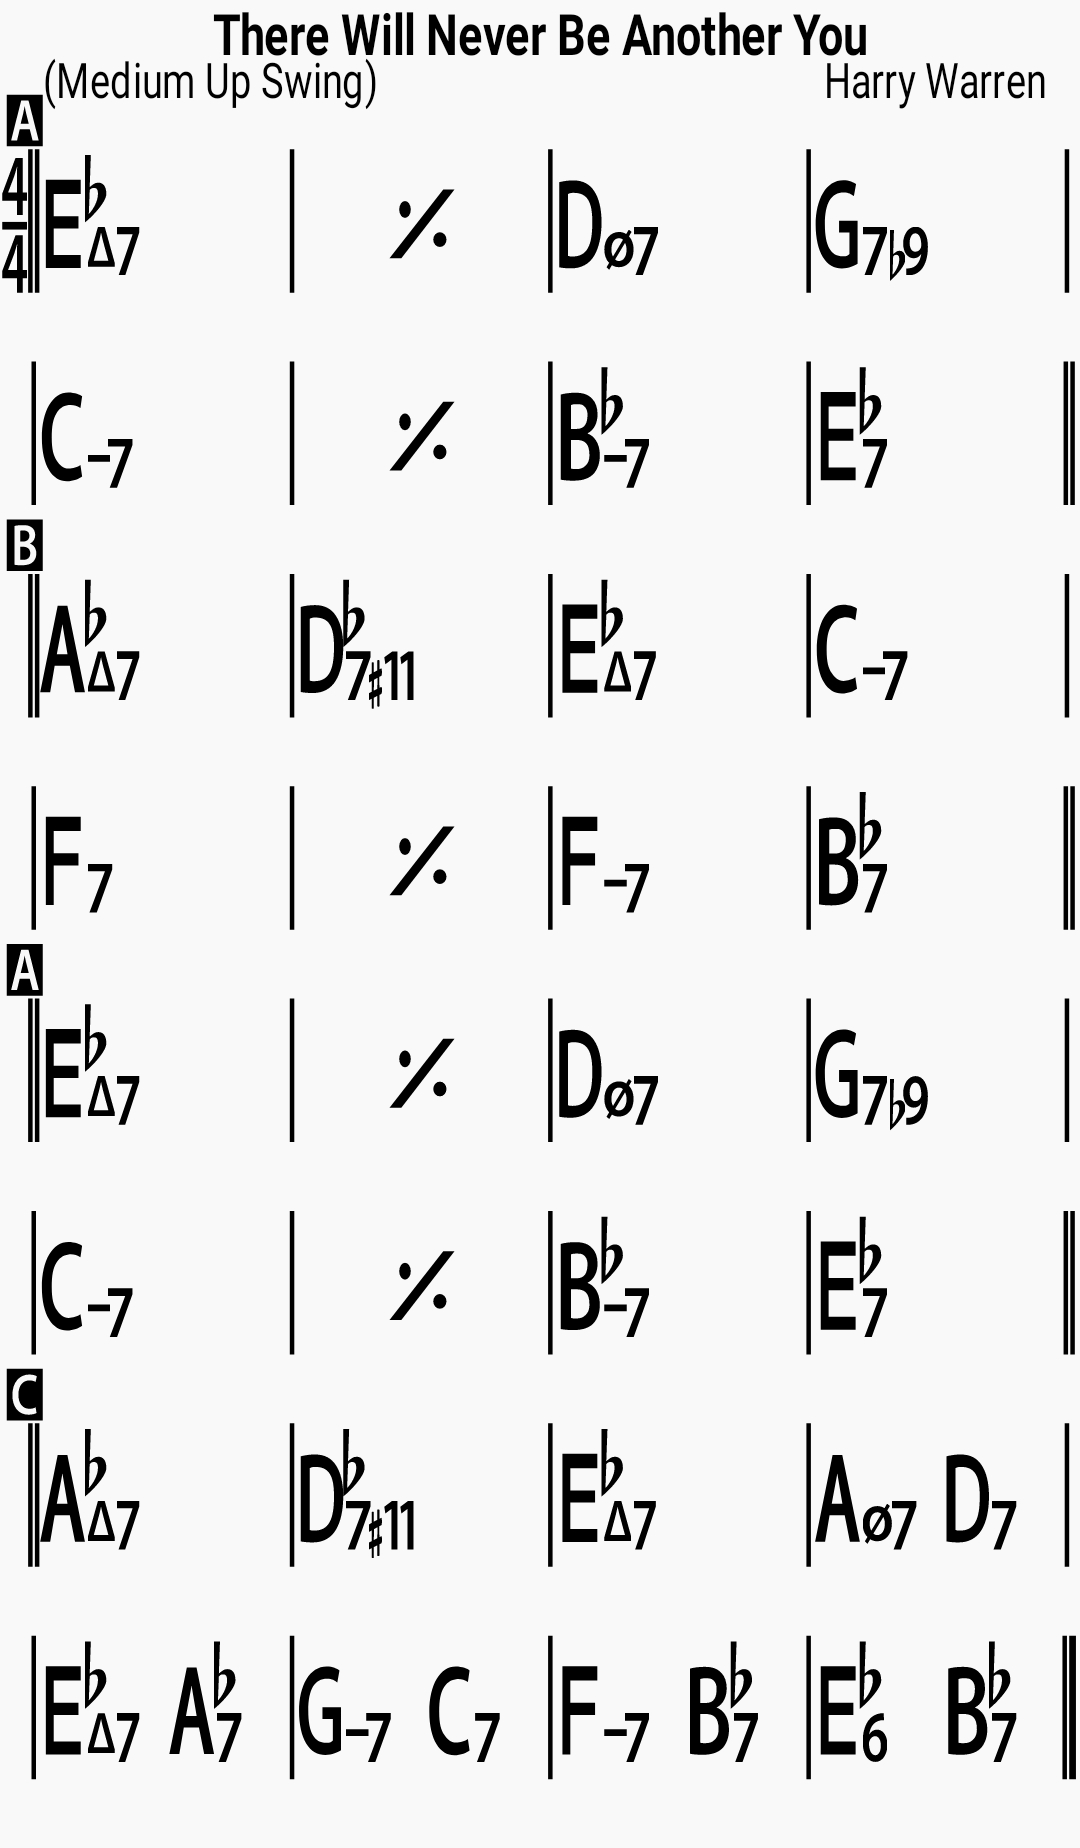 Chord chart for the jazz standard There Will Never Be Another You